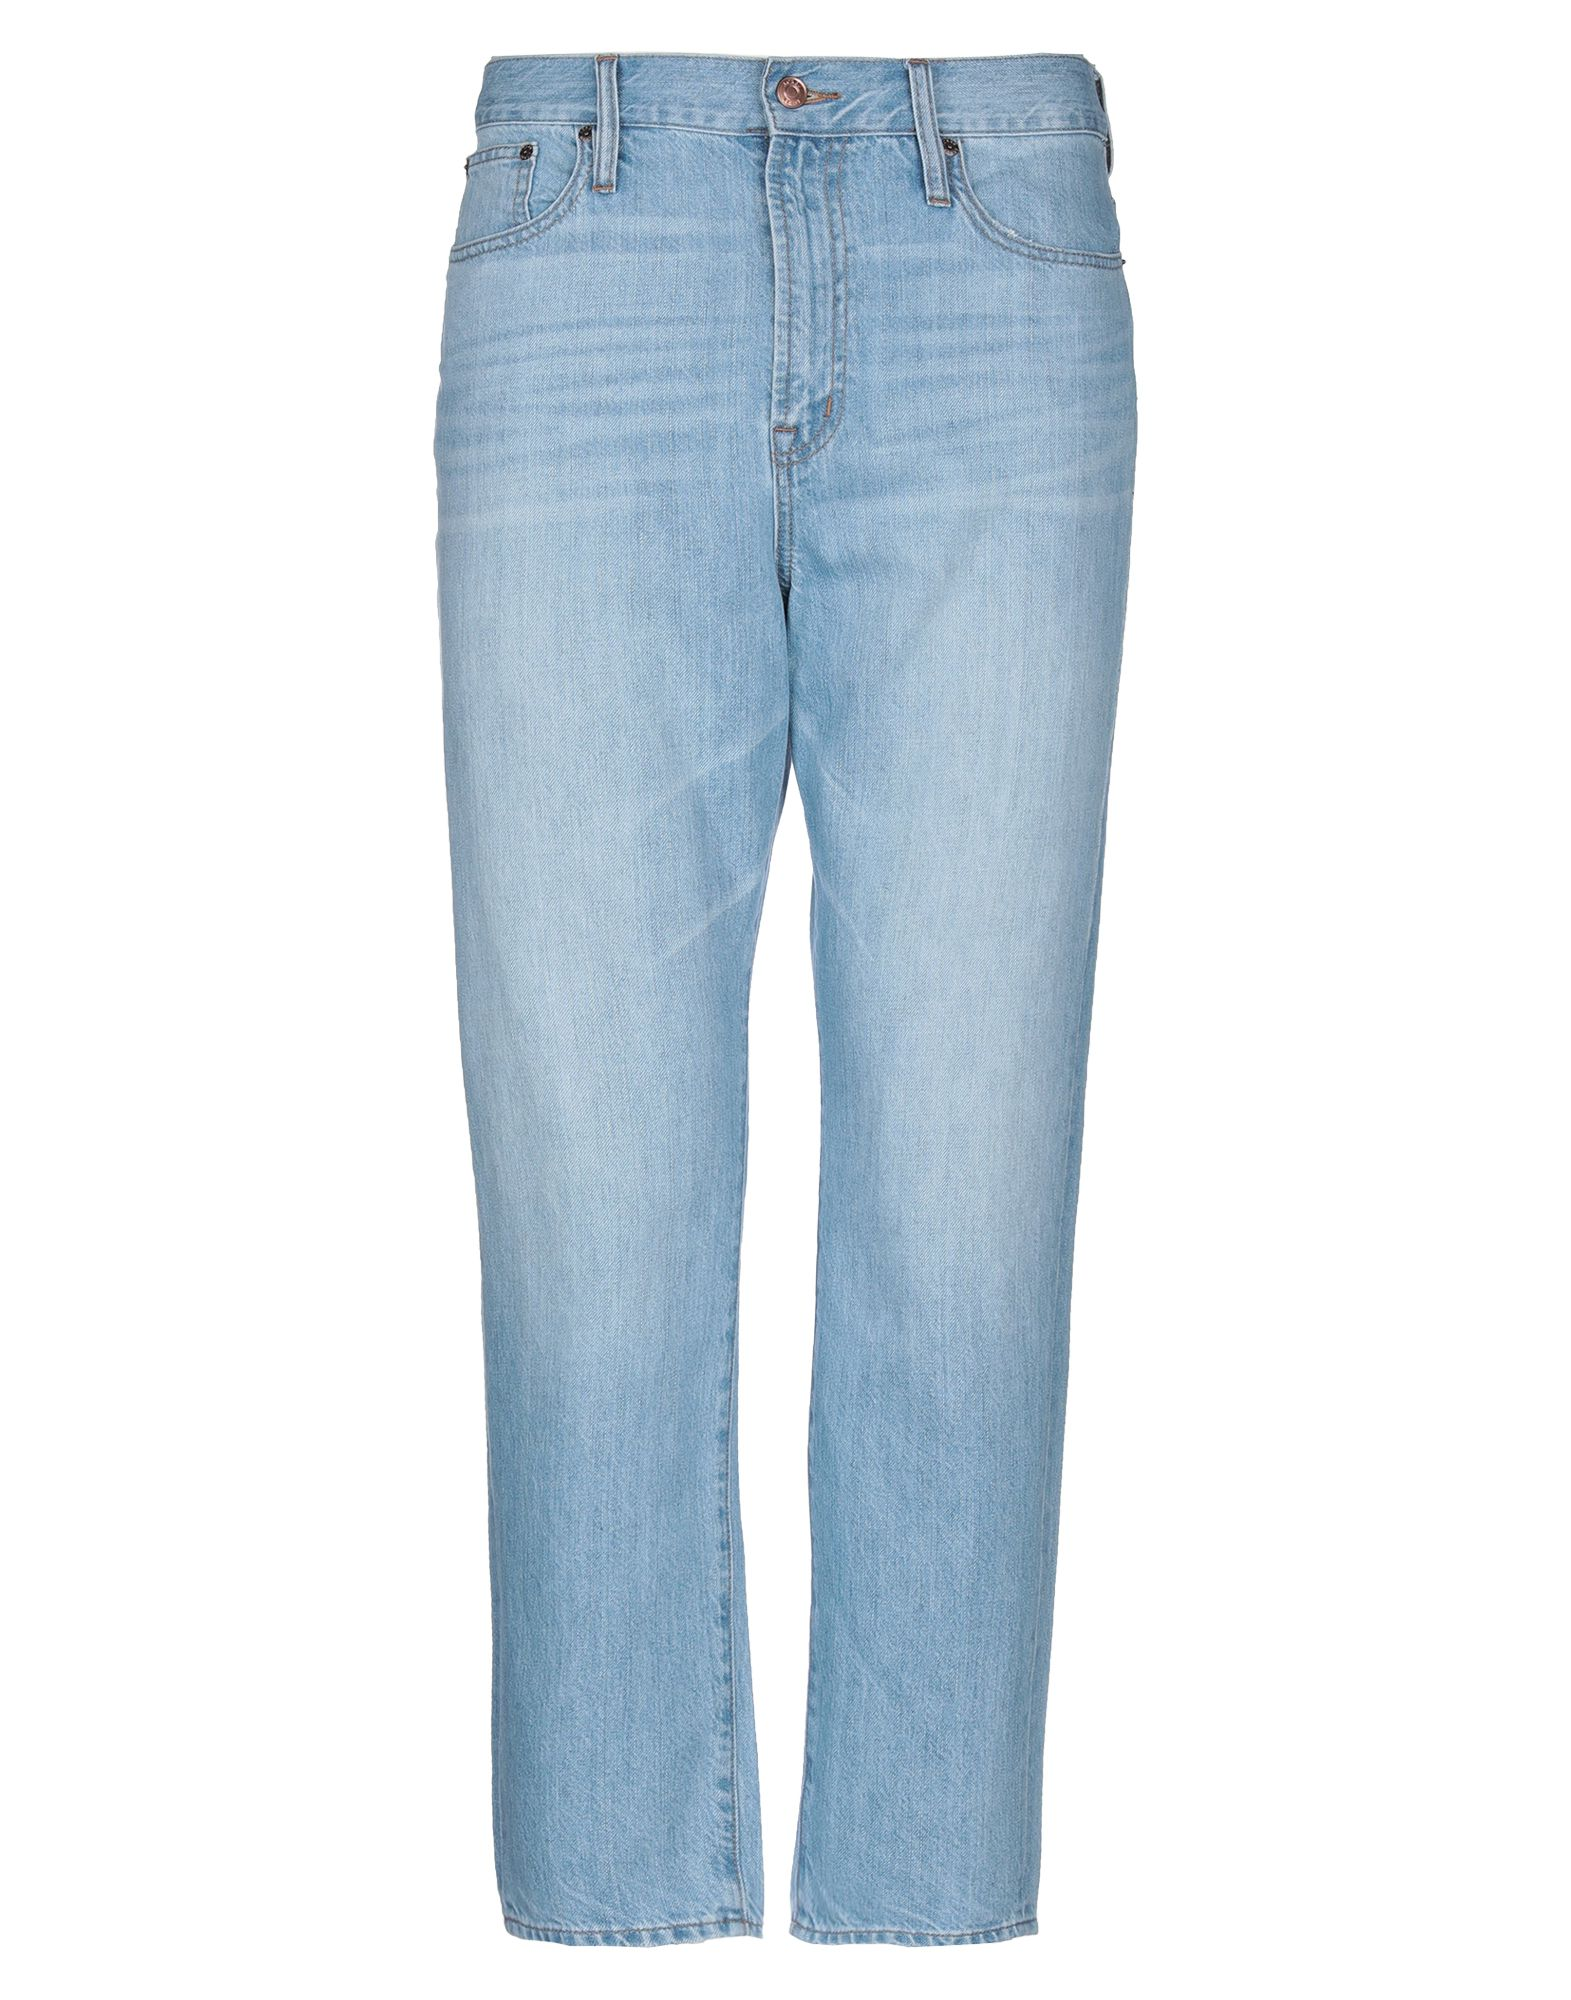 J.CREW Jeans. denim, faded, logo, light wash, high waisted, front closure, button, zip, multipockets, contains non-textile parts of animal origin, solid color. 100% Cotton